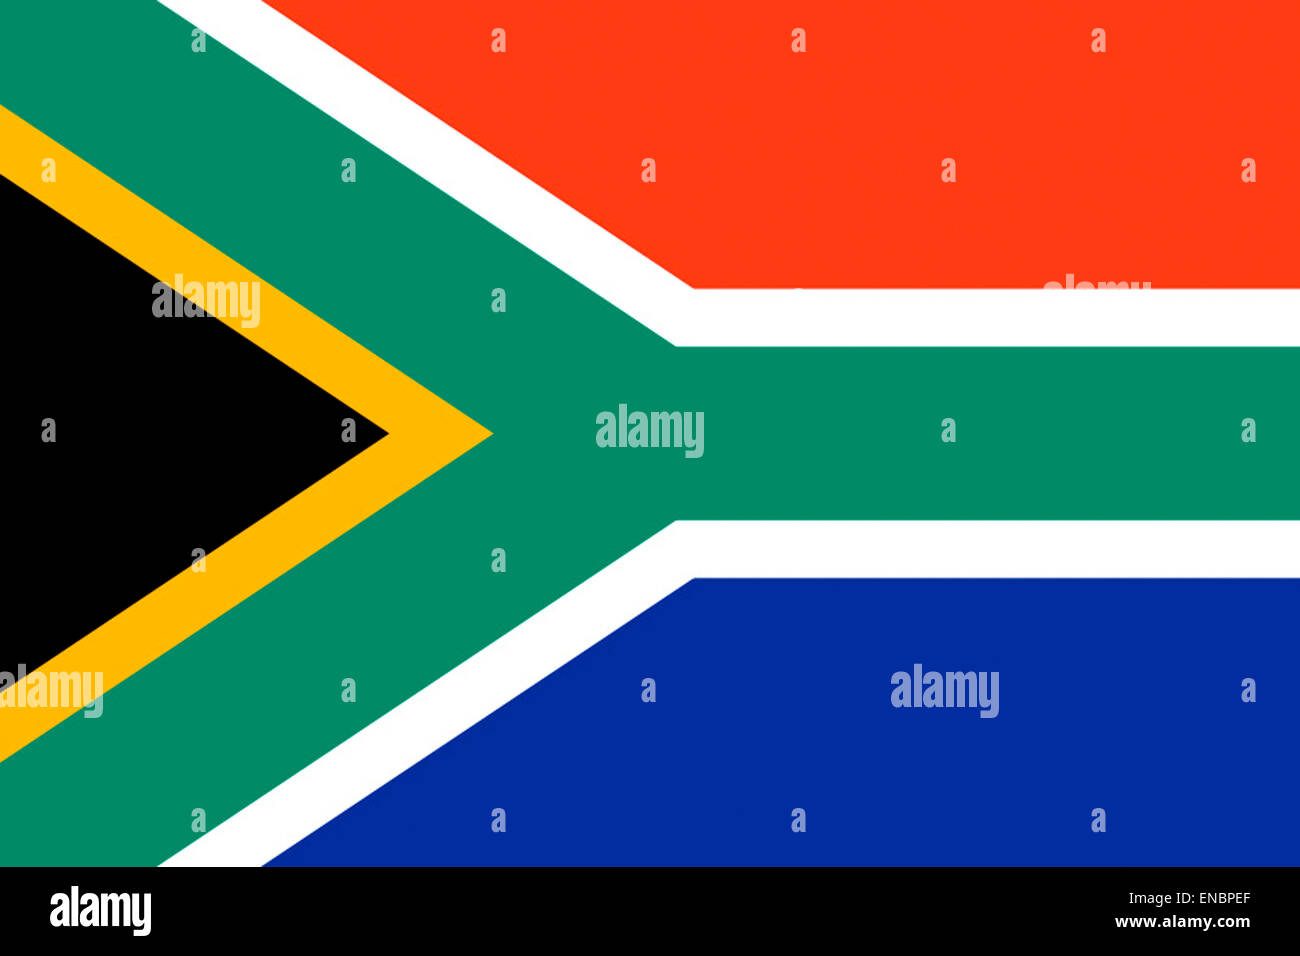 National flag of the Republic of South Africa. - Stock Image